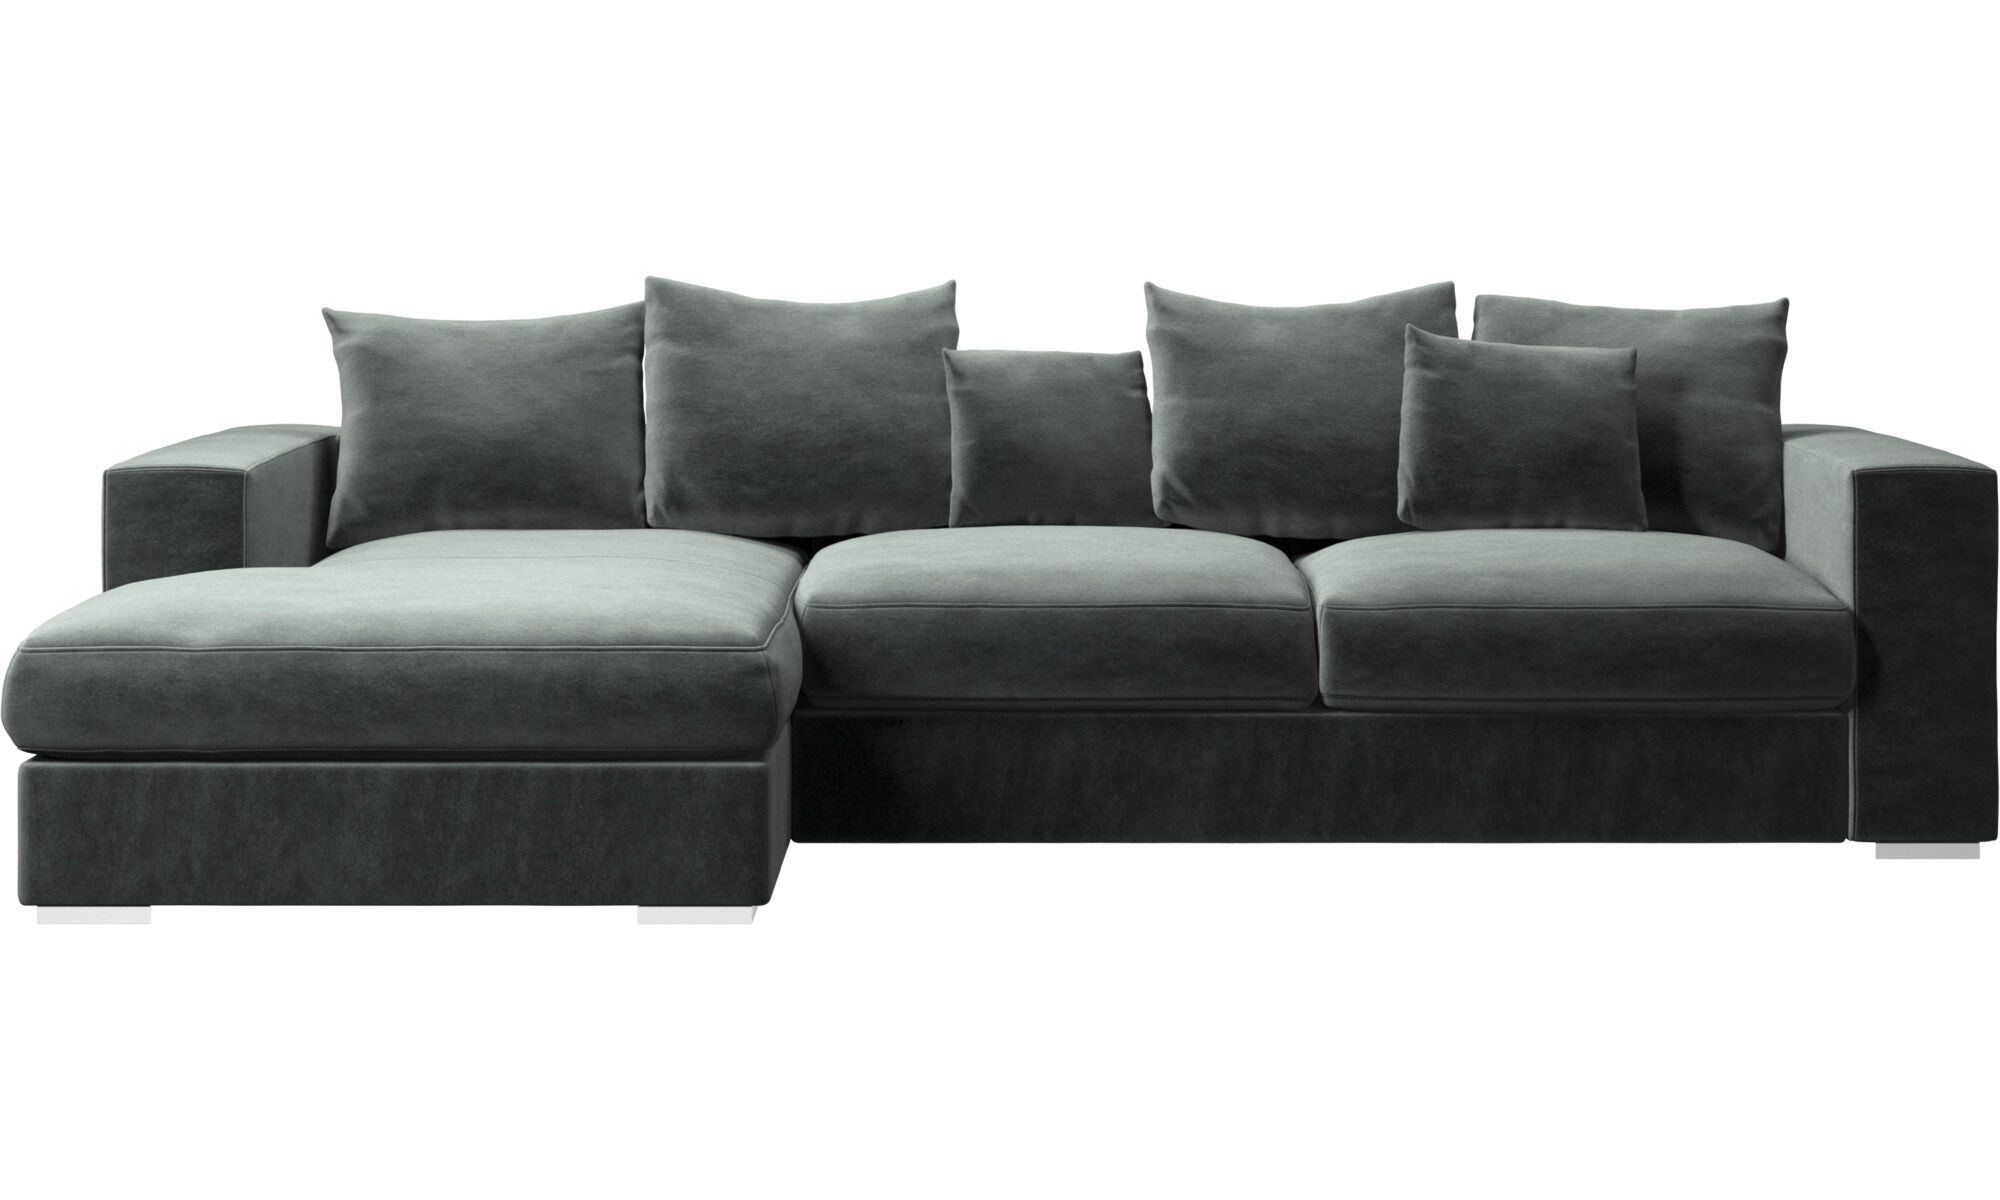 chez long sofa bed leather or fabric modern sofas for your home contemporary design from boconcept chaise longue cenova with resting unit green